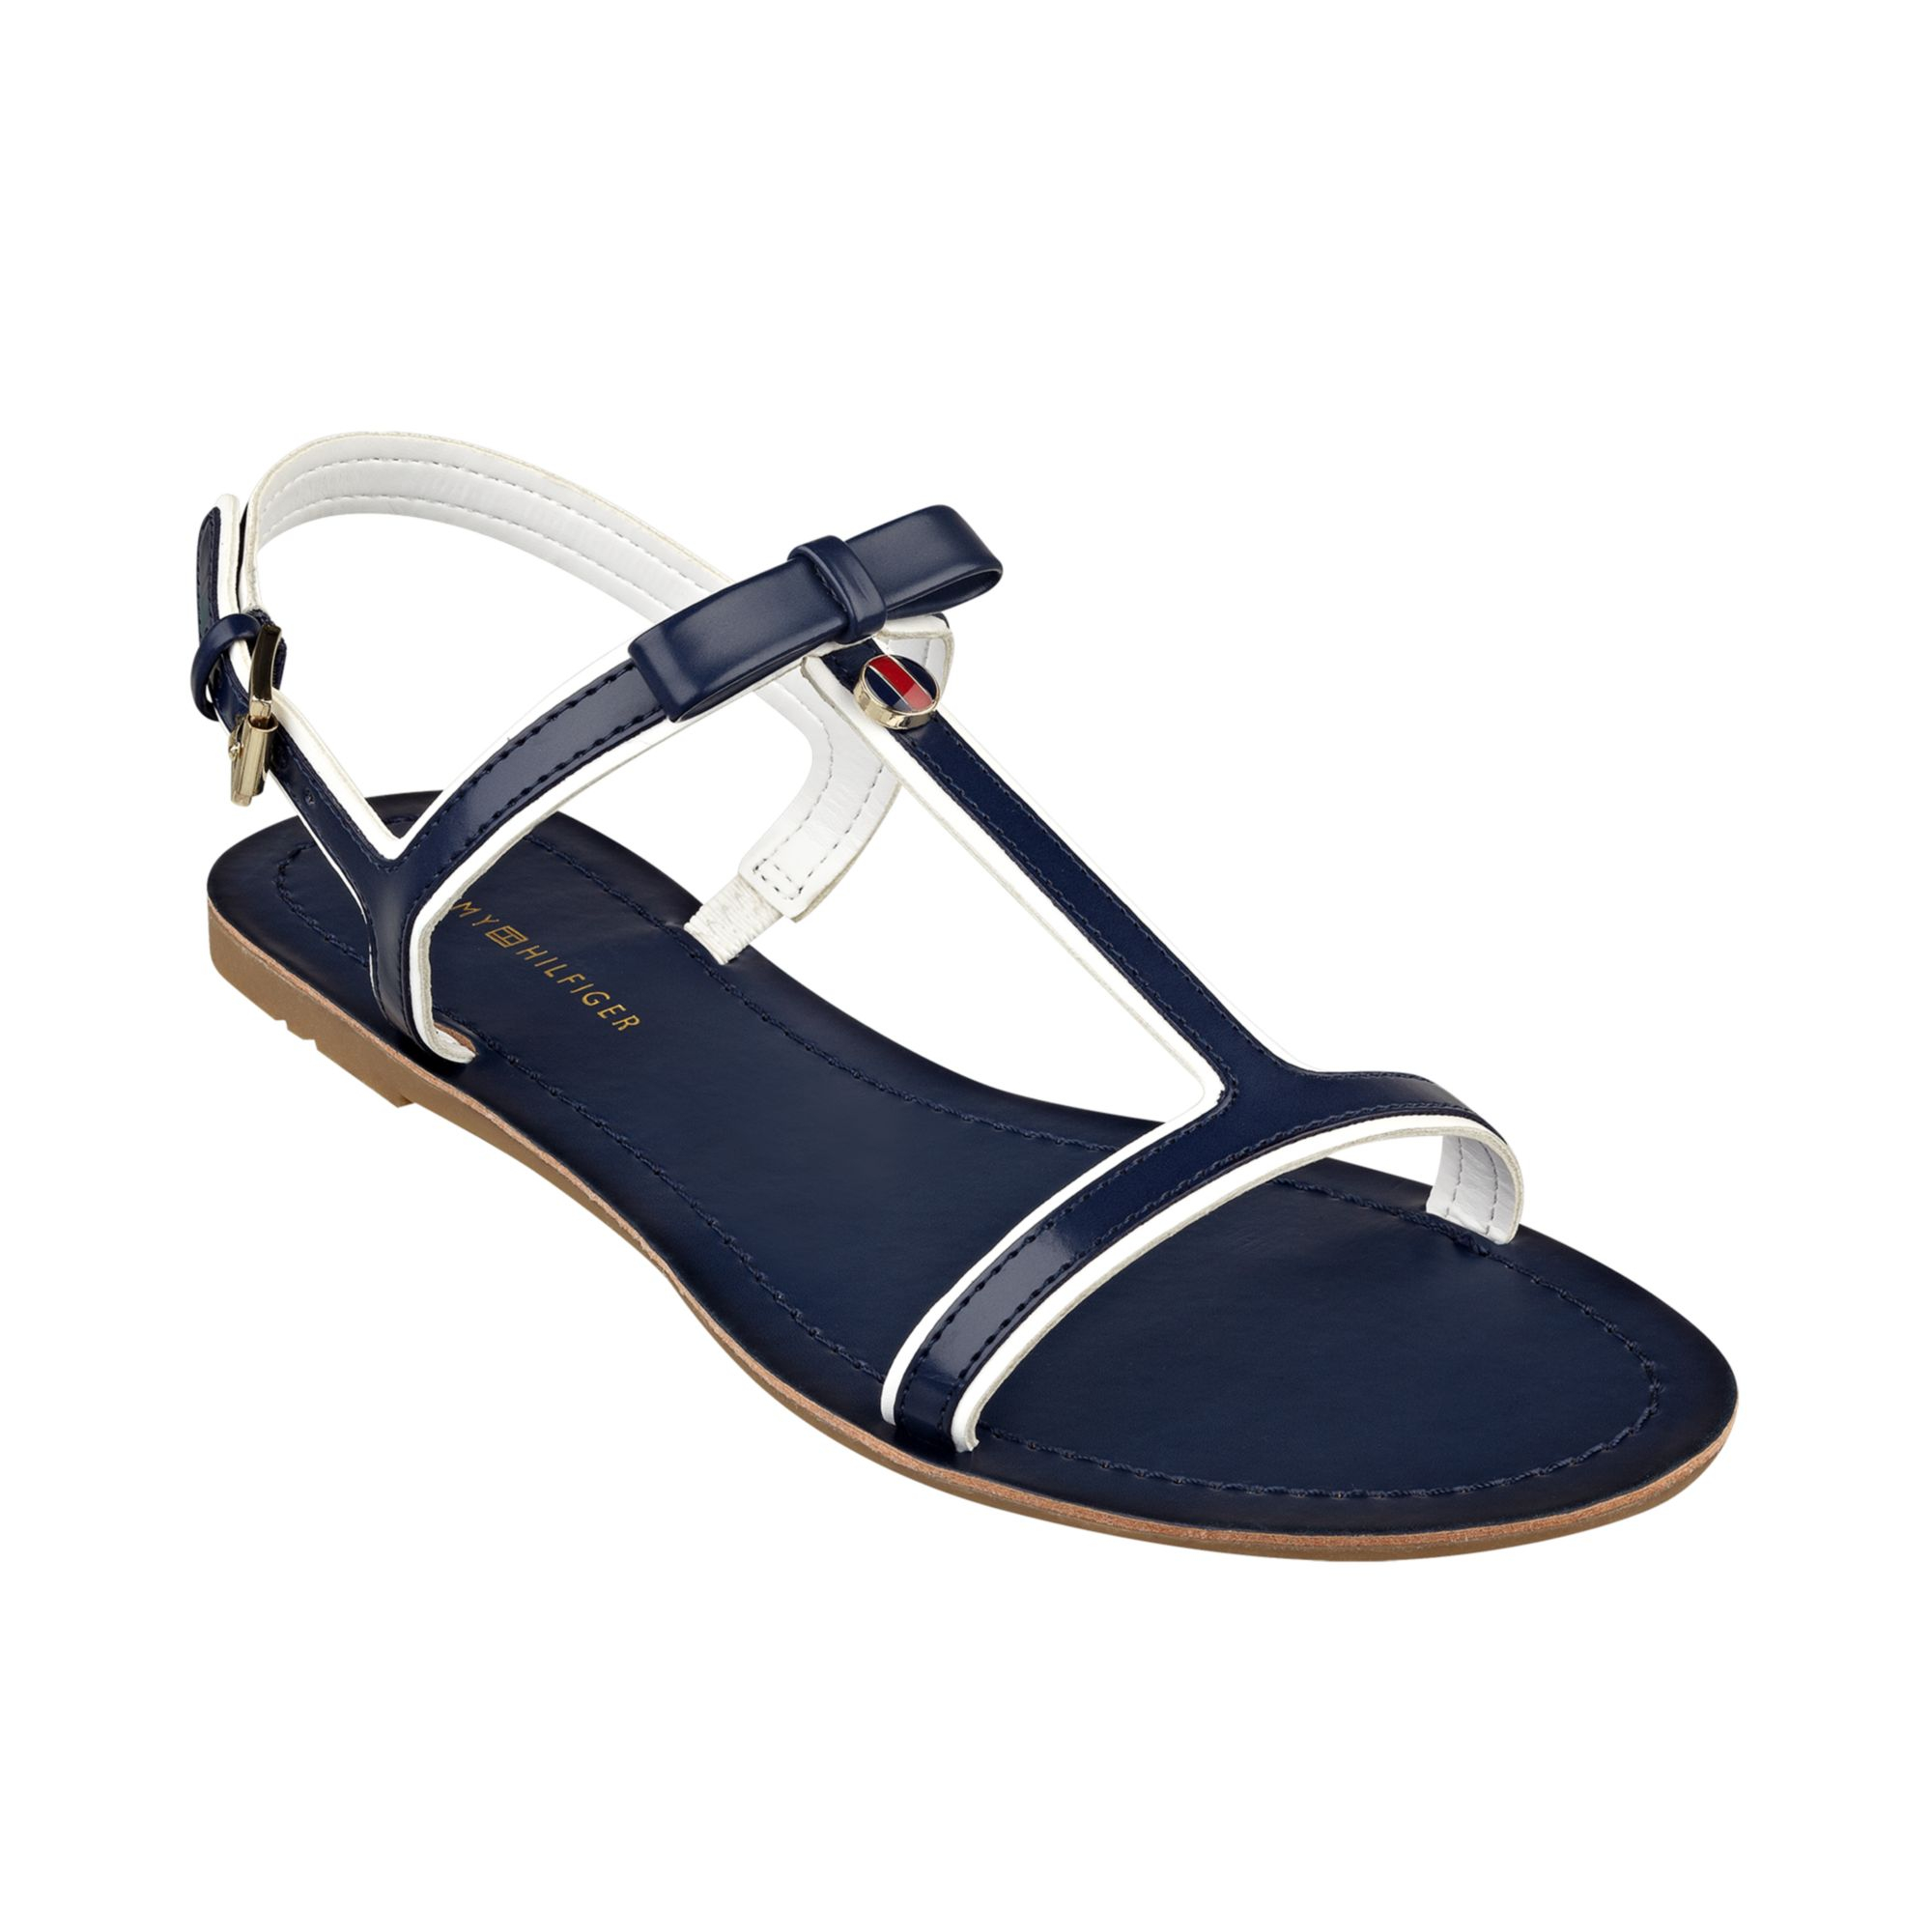 6dde8ce95 Tommy Hilfiger Womens Lisel Flat Sandals In Blue (Navy)